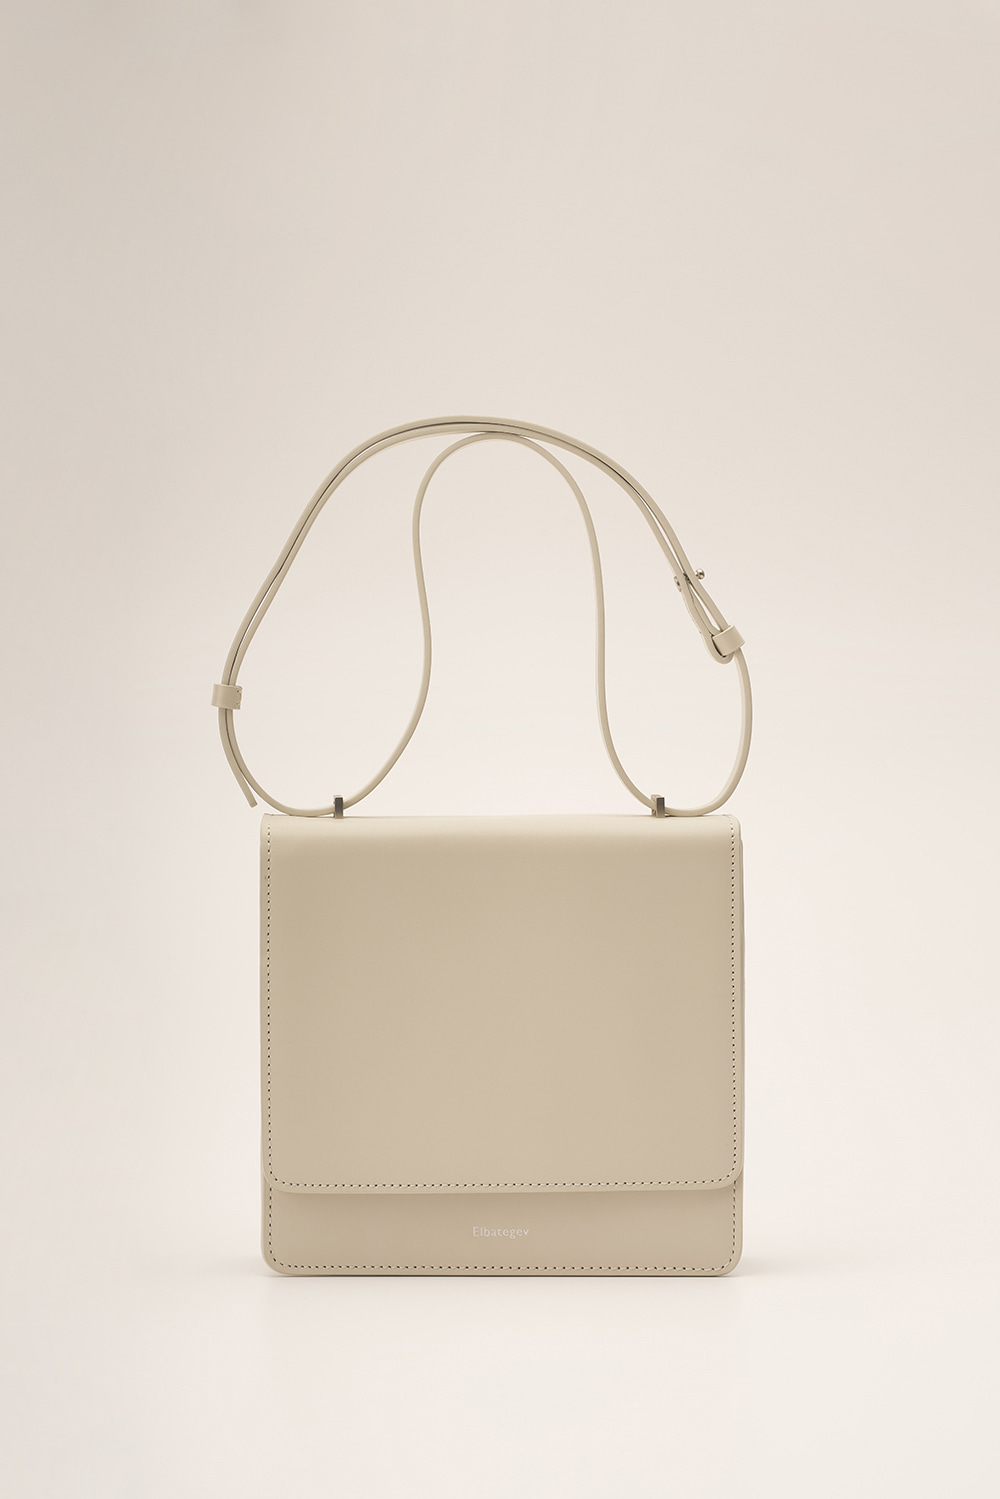 Territory Bag in Pale Stone